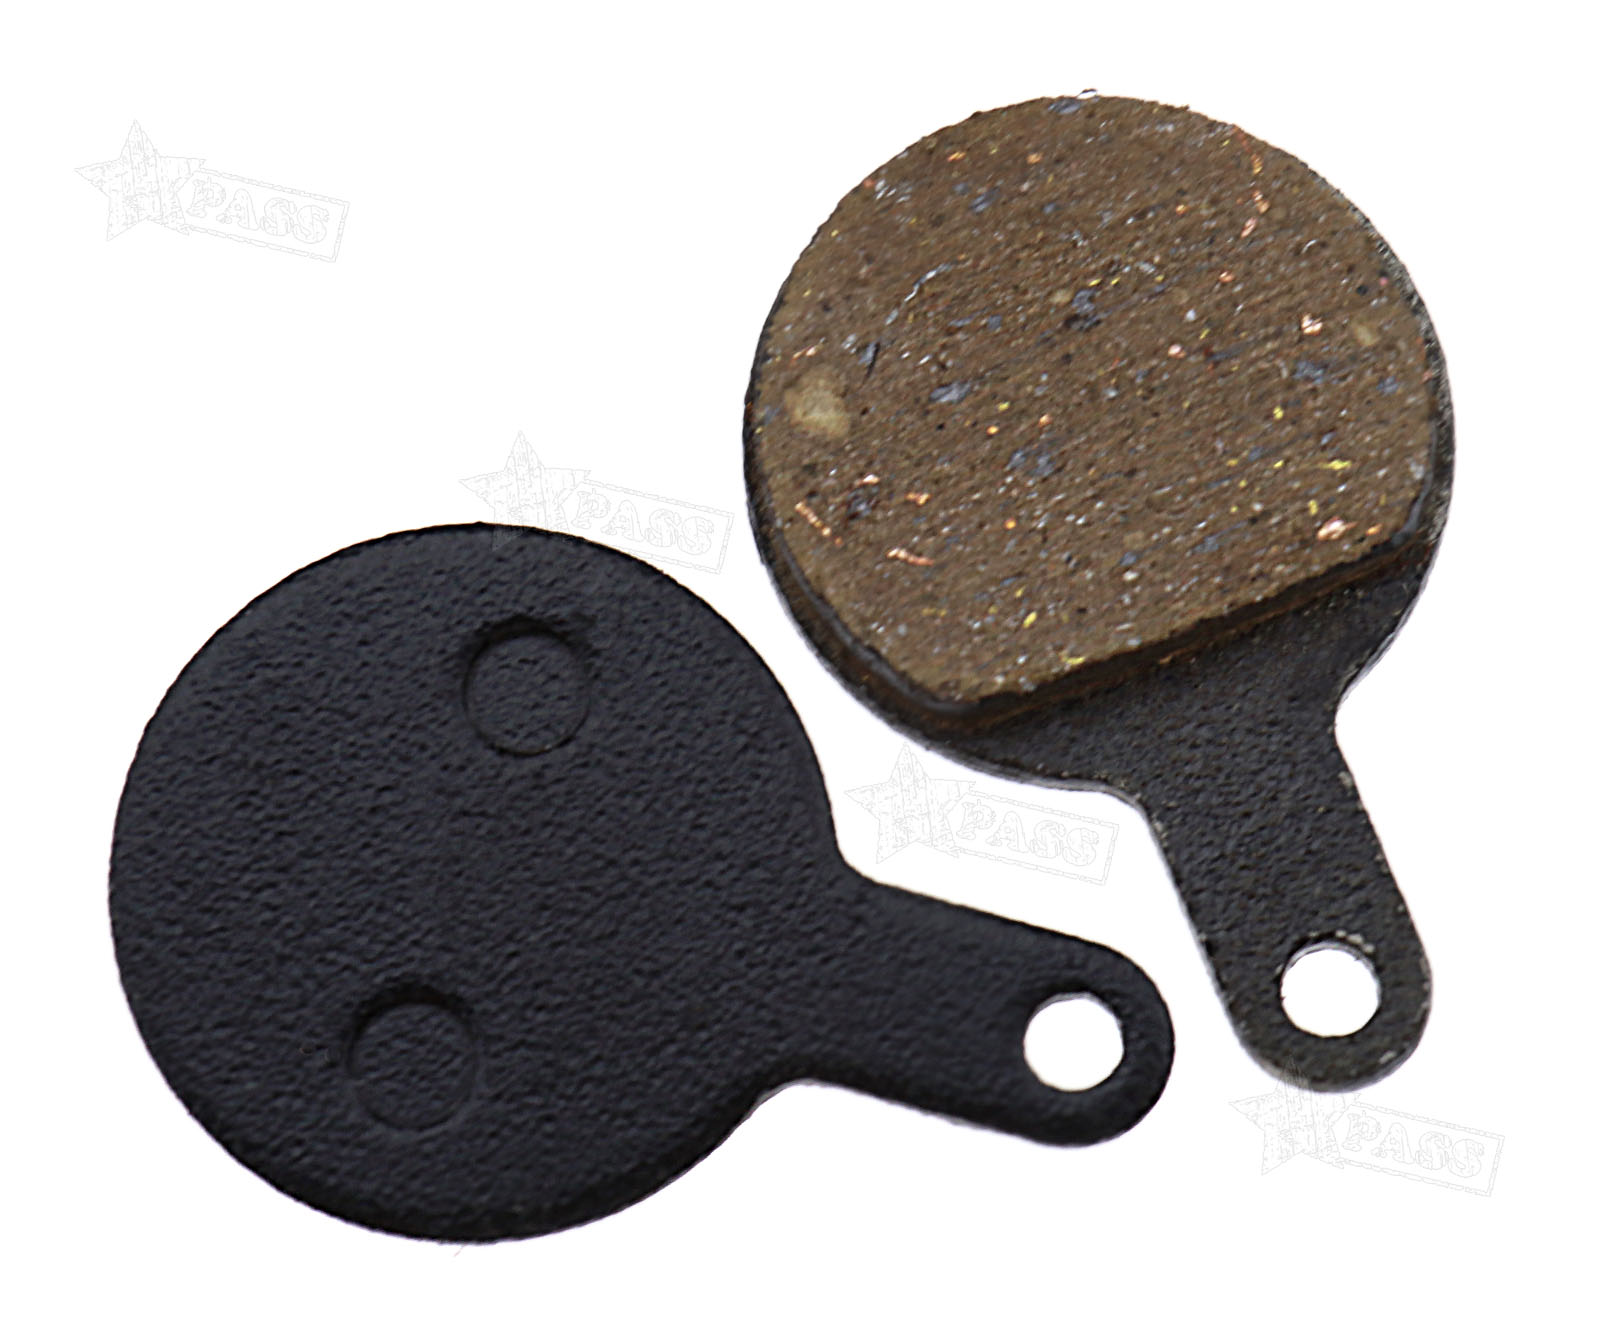 Organic Resin Bicycle MTB Bike Disc Brake Pad For Tektro IOX LYRA